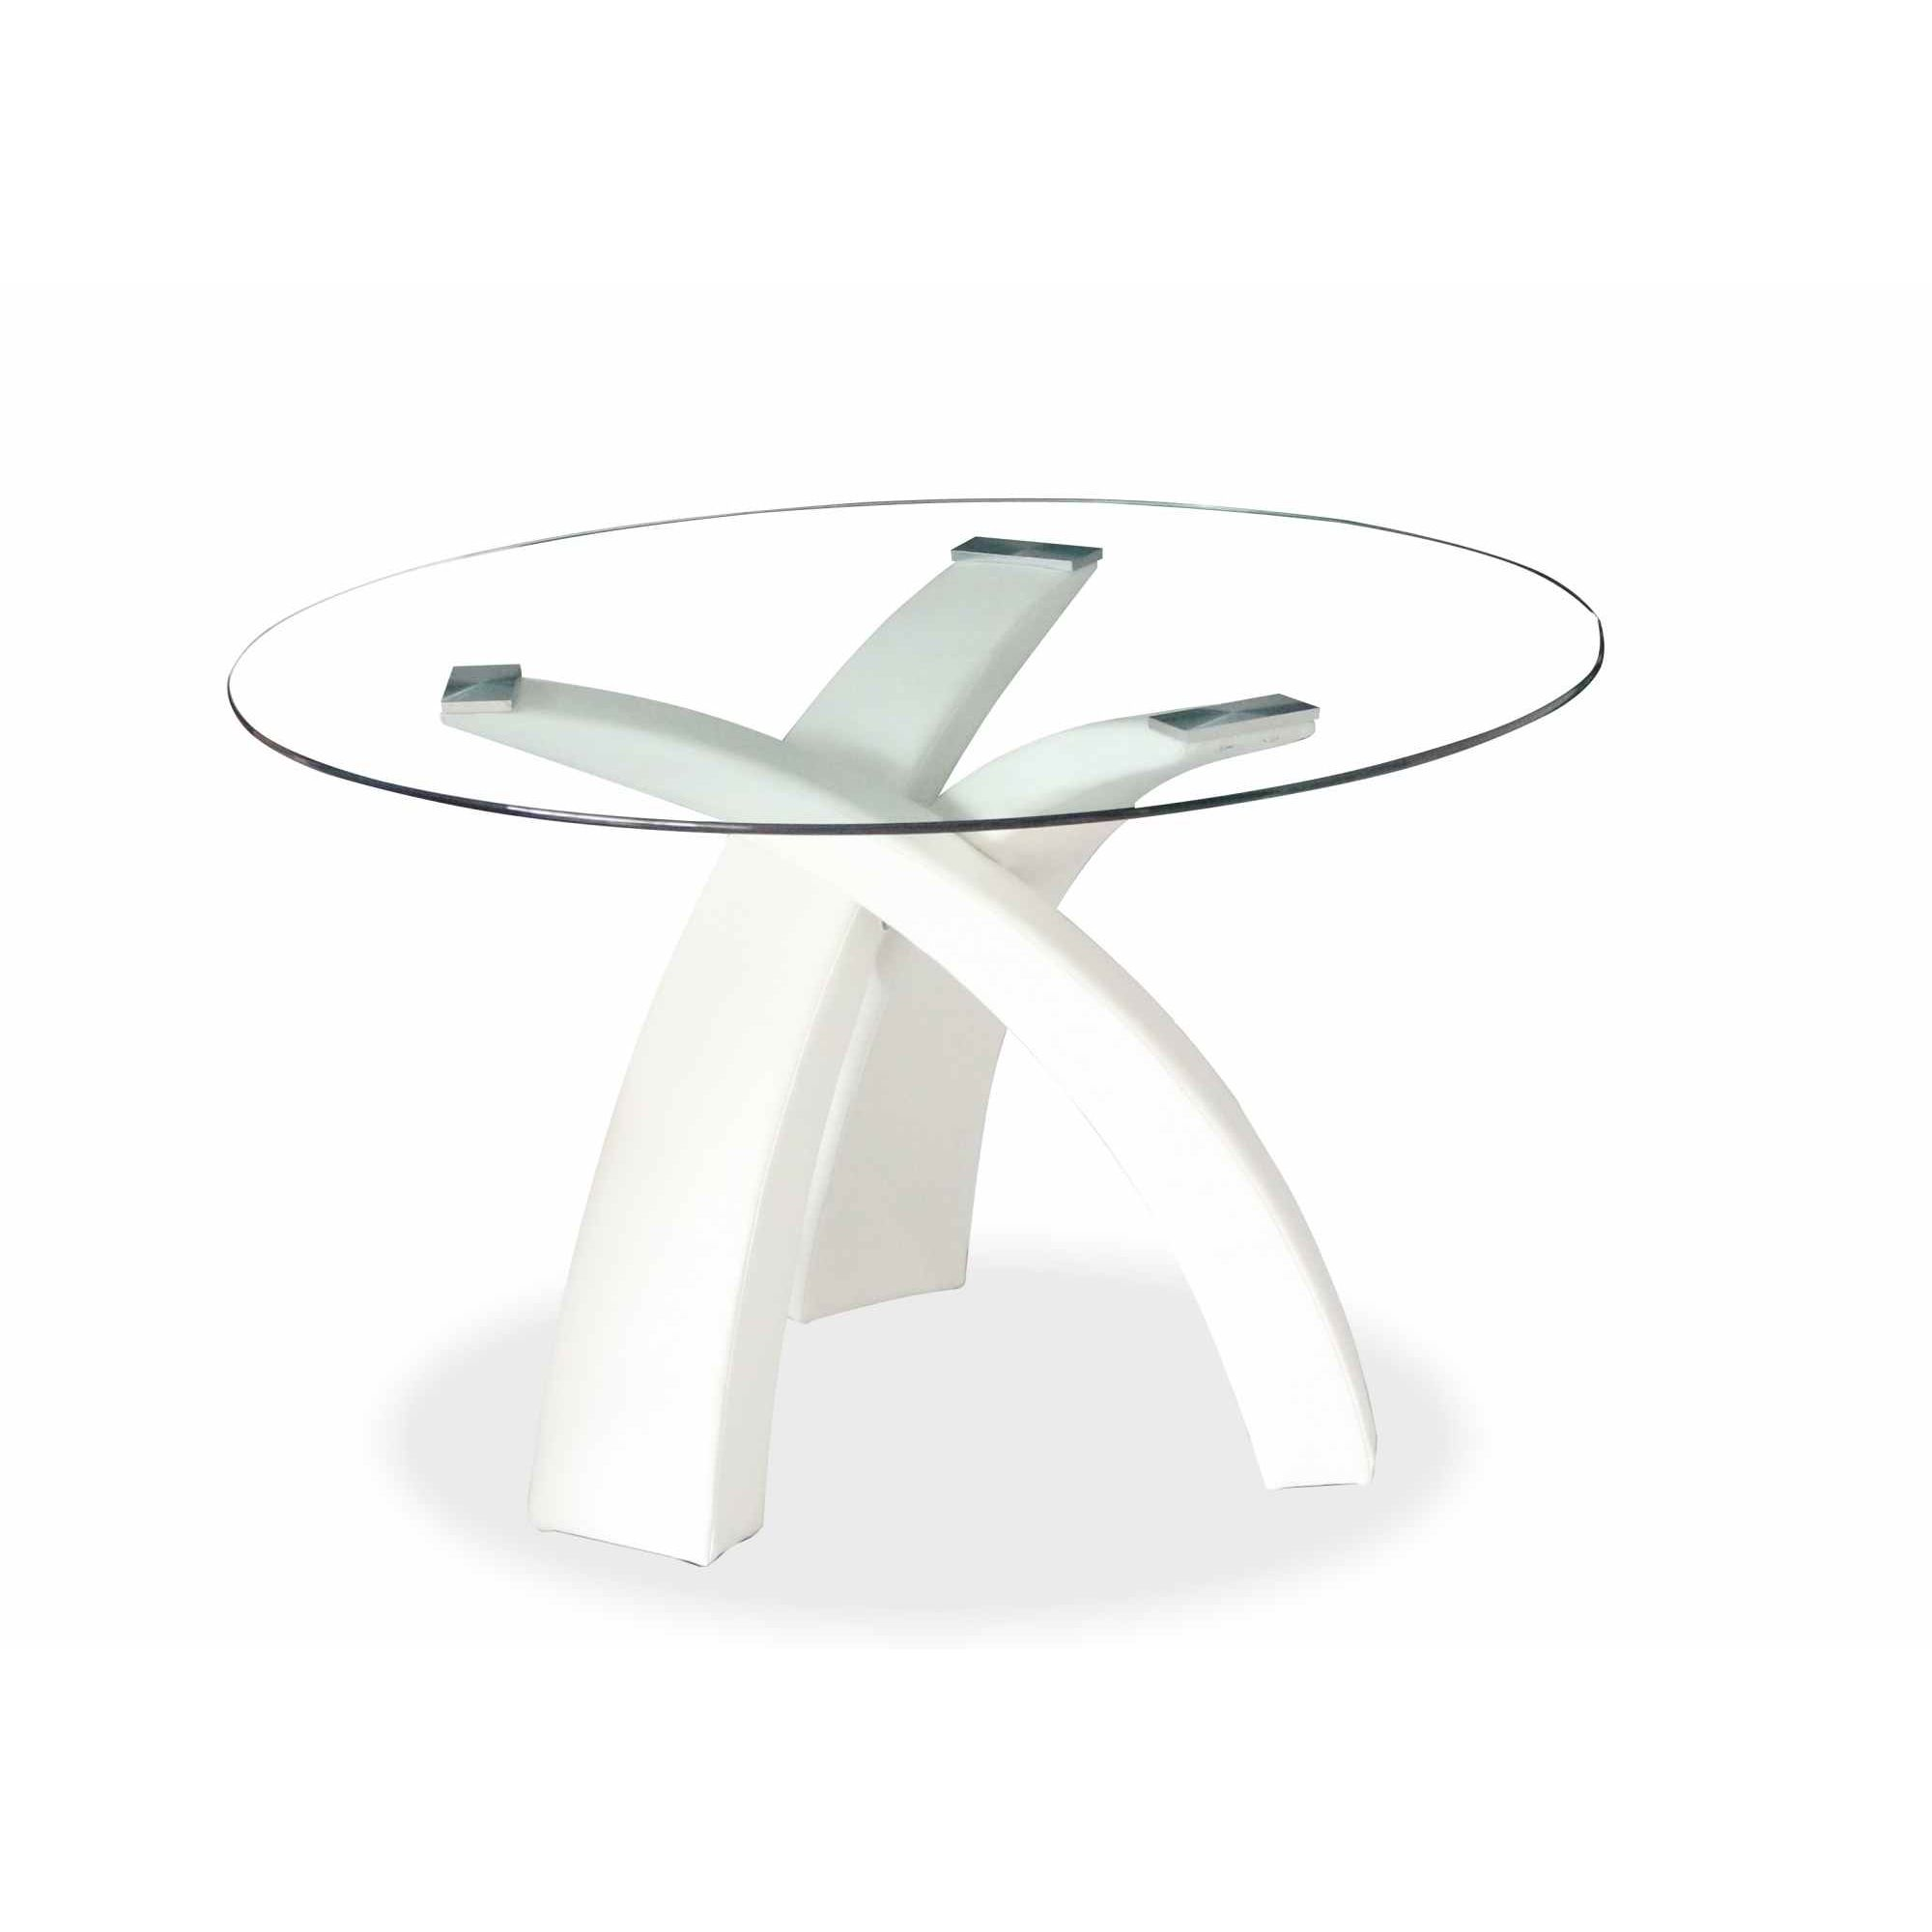 Emejing table a manger blanche ronde contemporary for Deco cuisine avec table a manger 80 cm de large